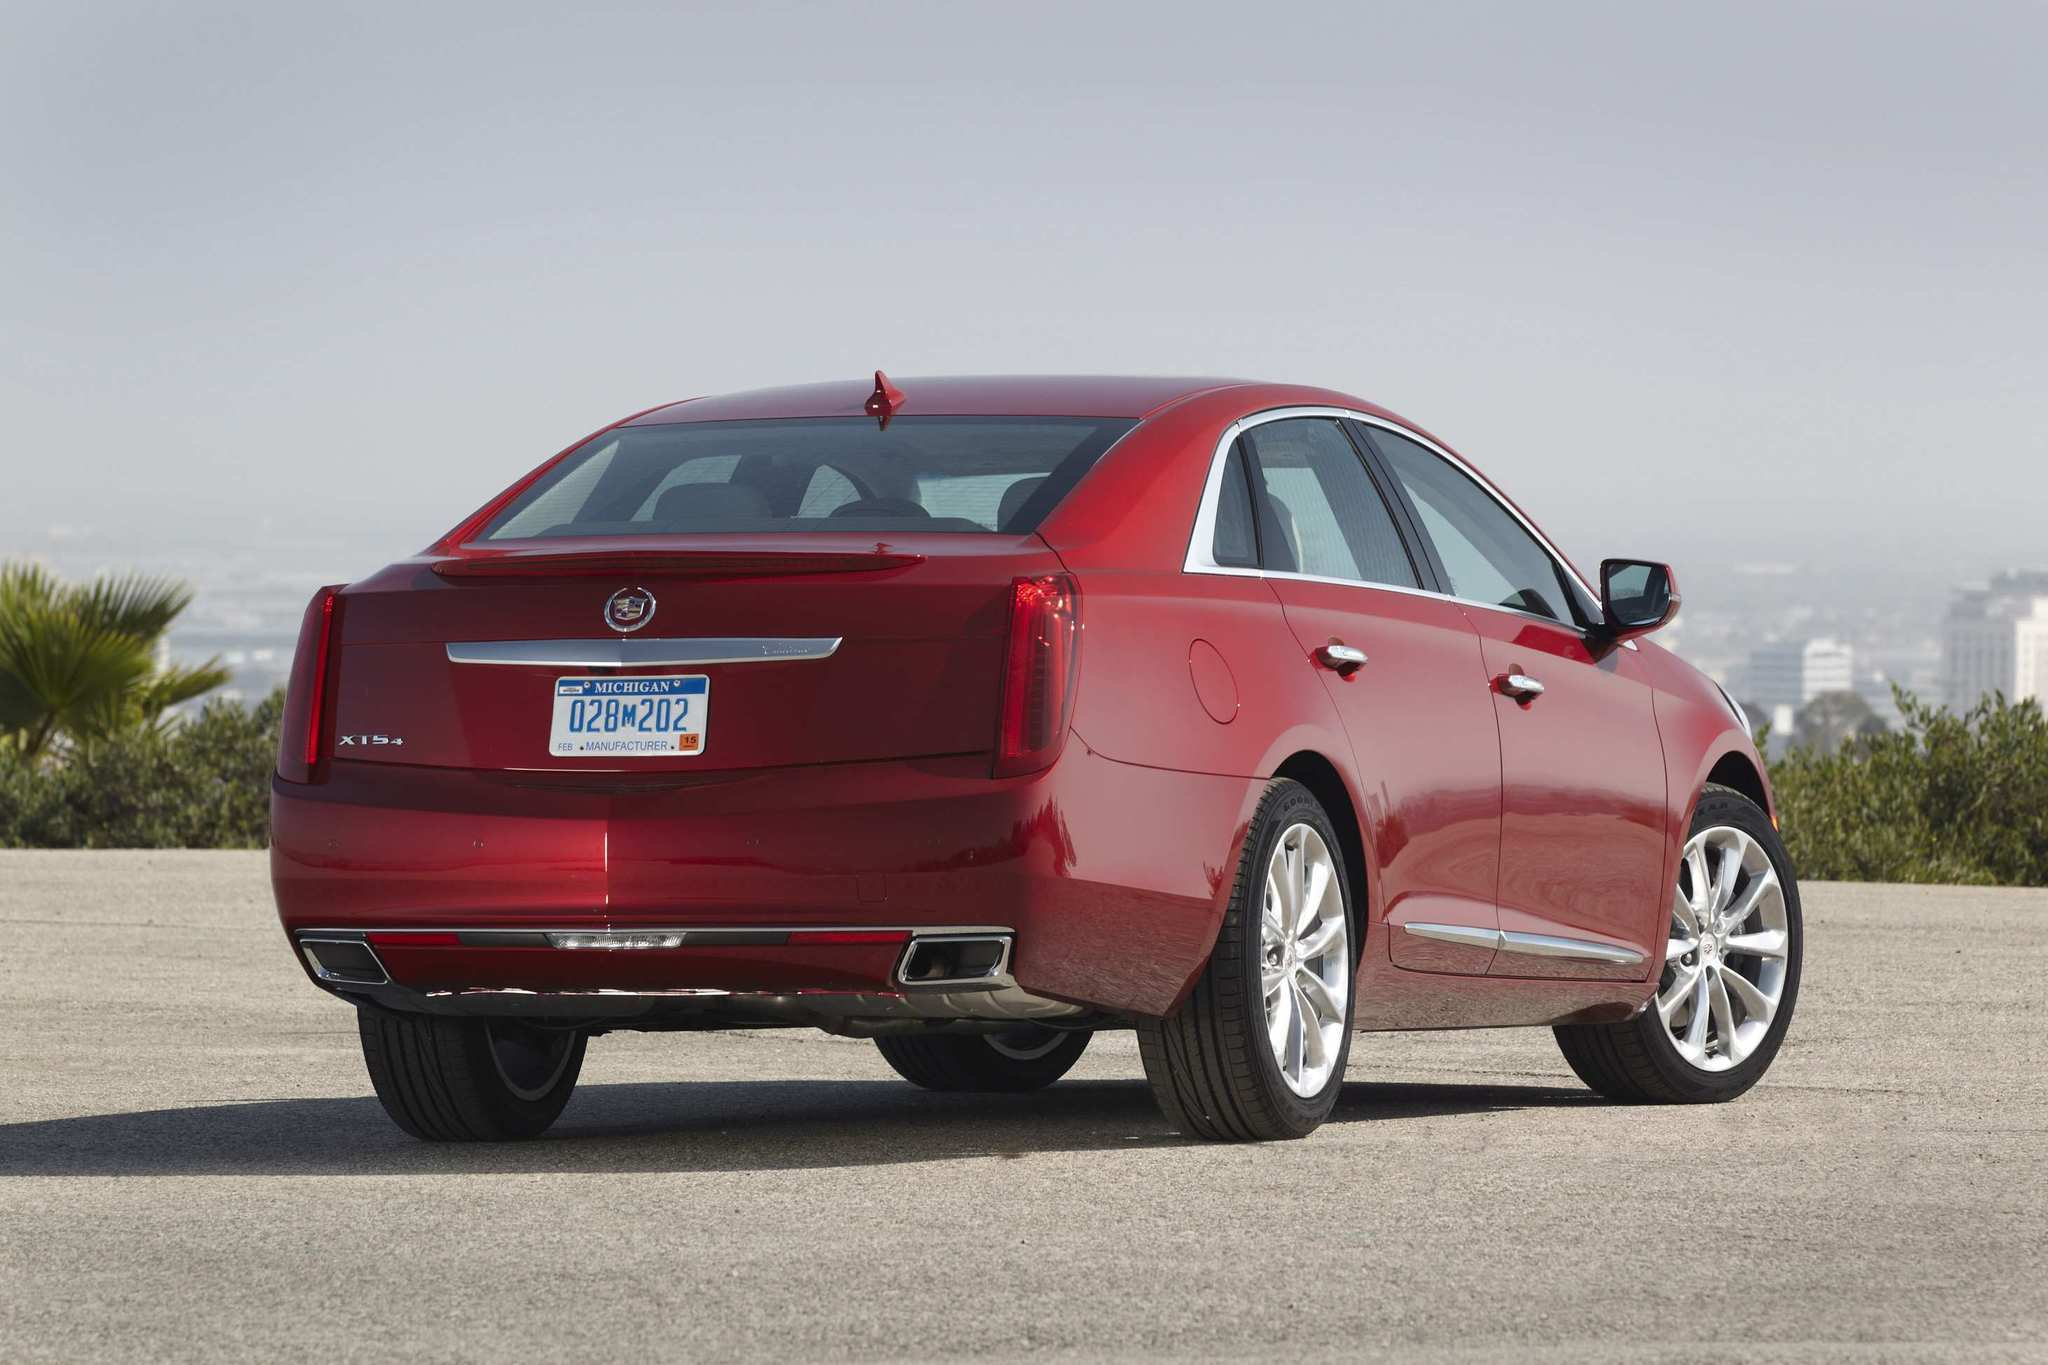 The 2013 Cadillac XTS - Comfort and silence